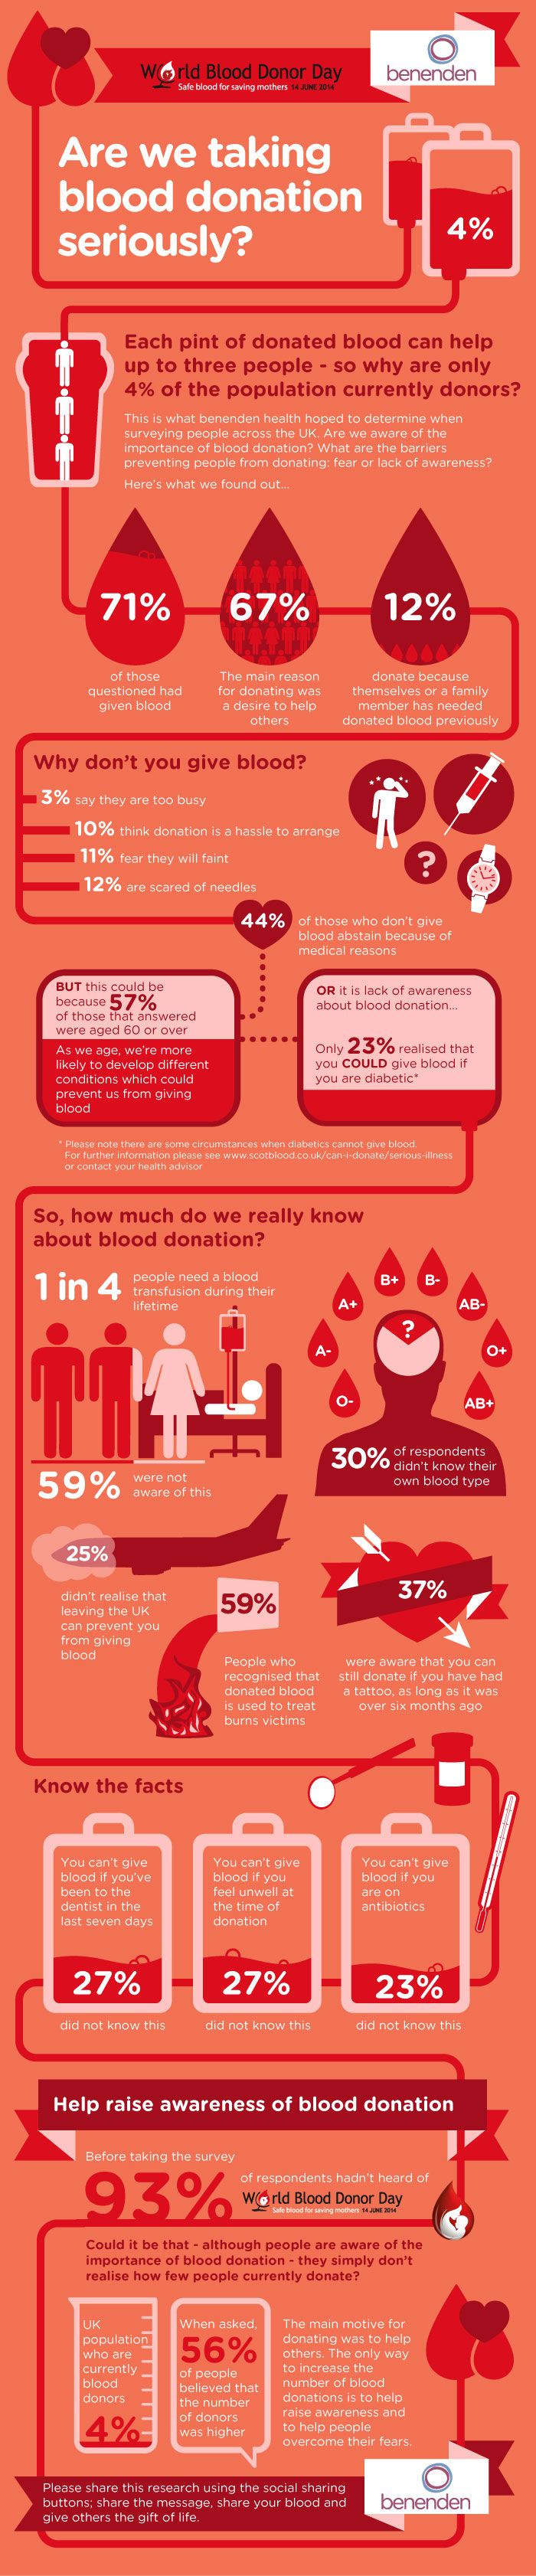 catchy blood drive campaign slogans blood types american red blood donation infogrpahic benenden